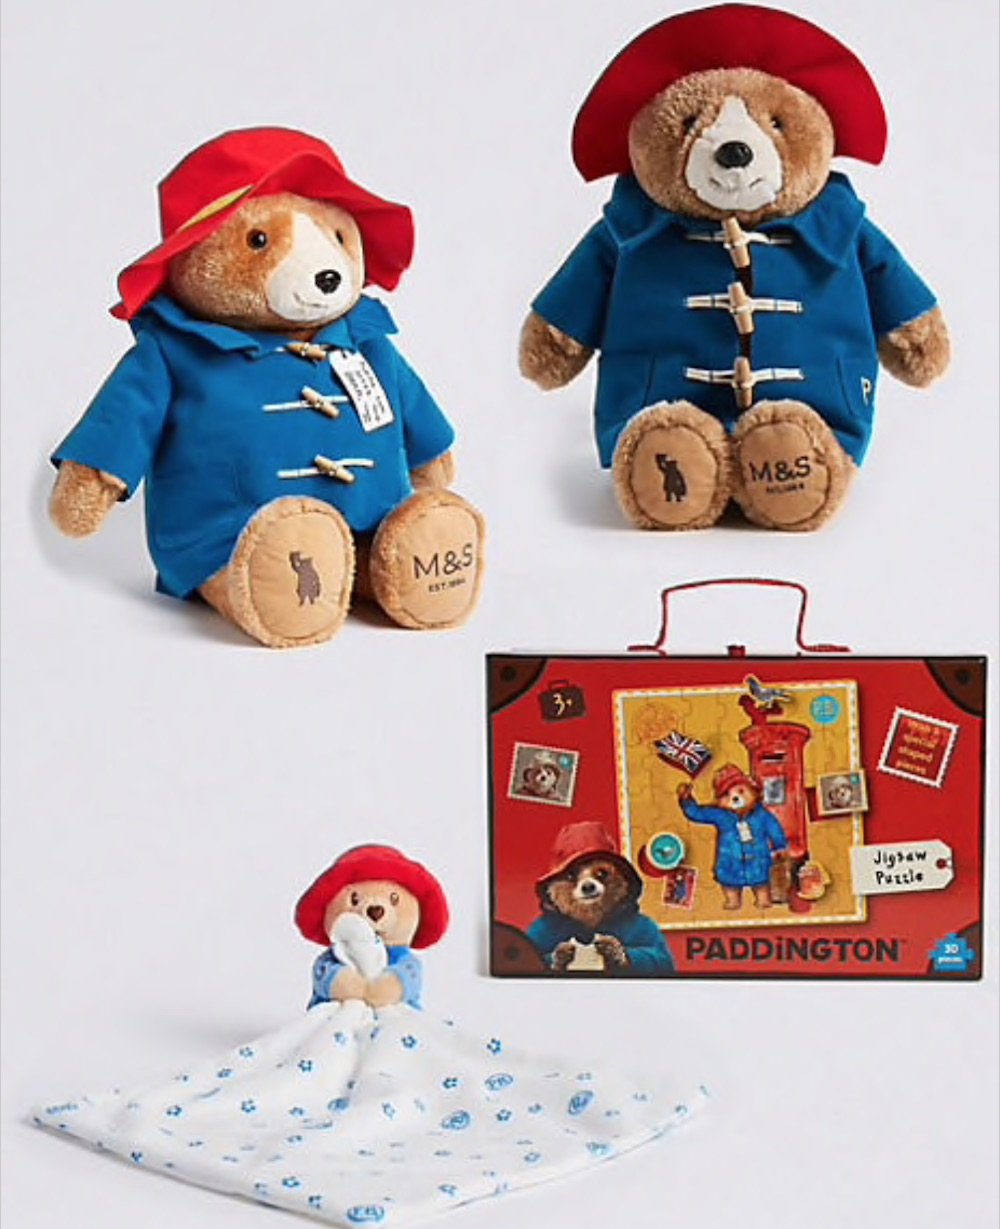 M&S paddington bear gifts festive gifts for under €20